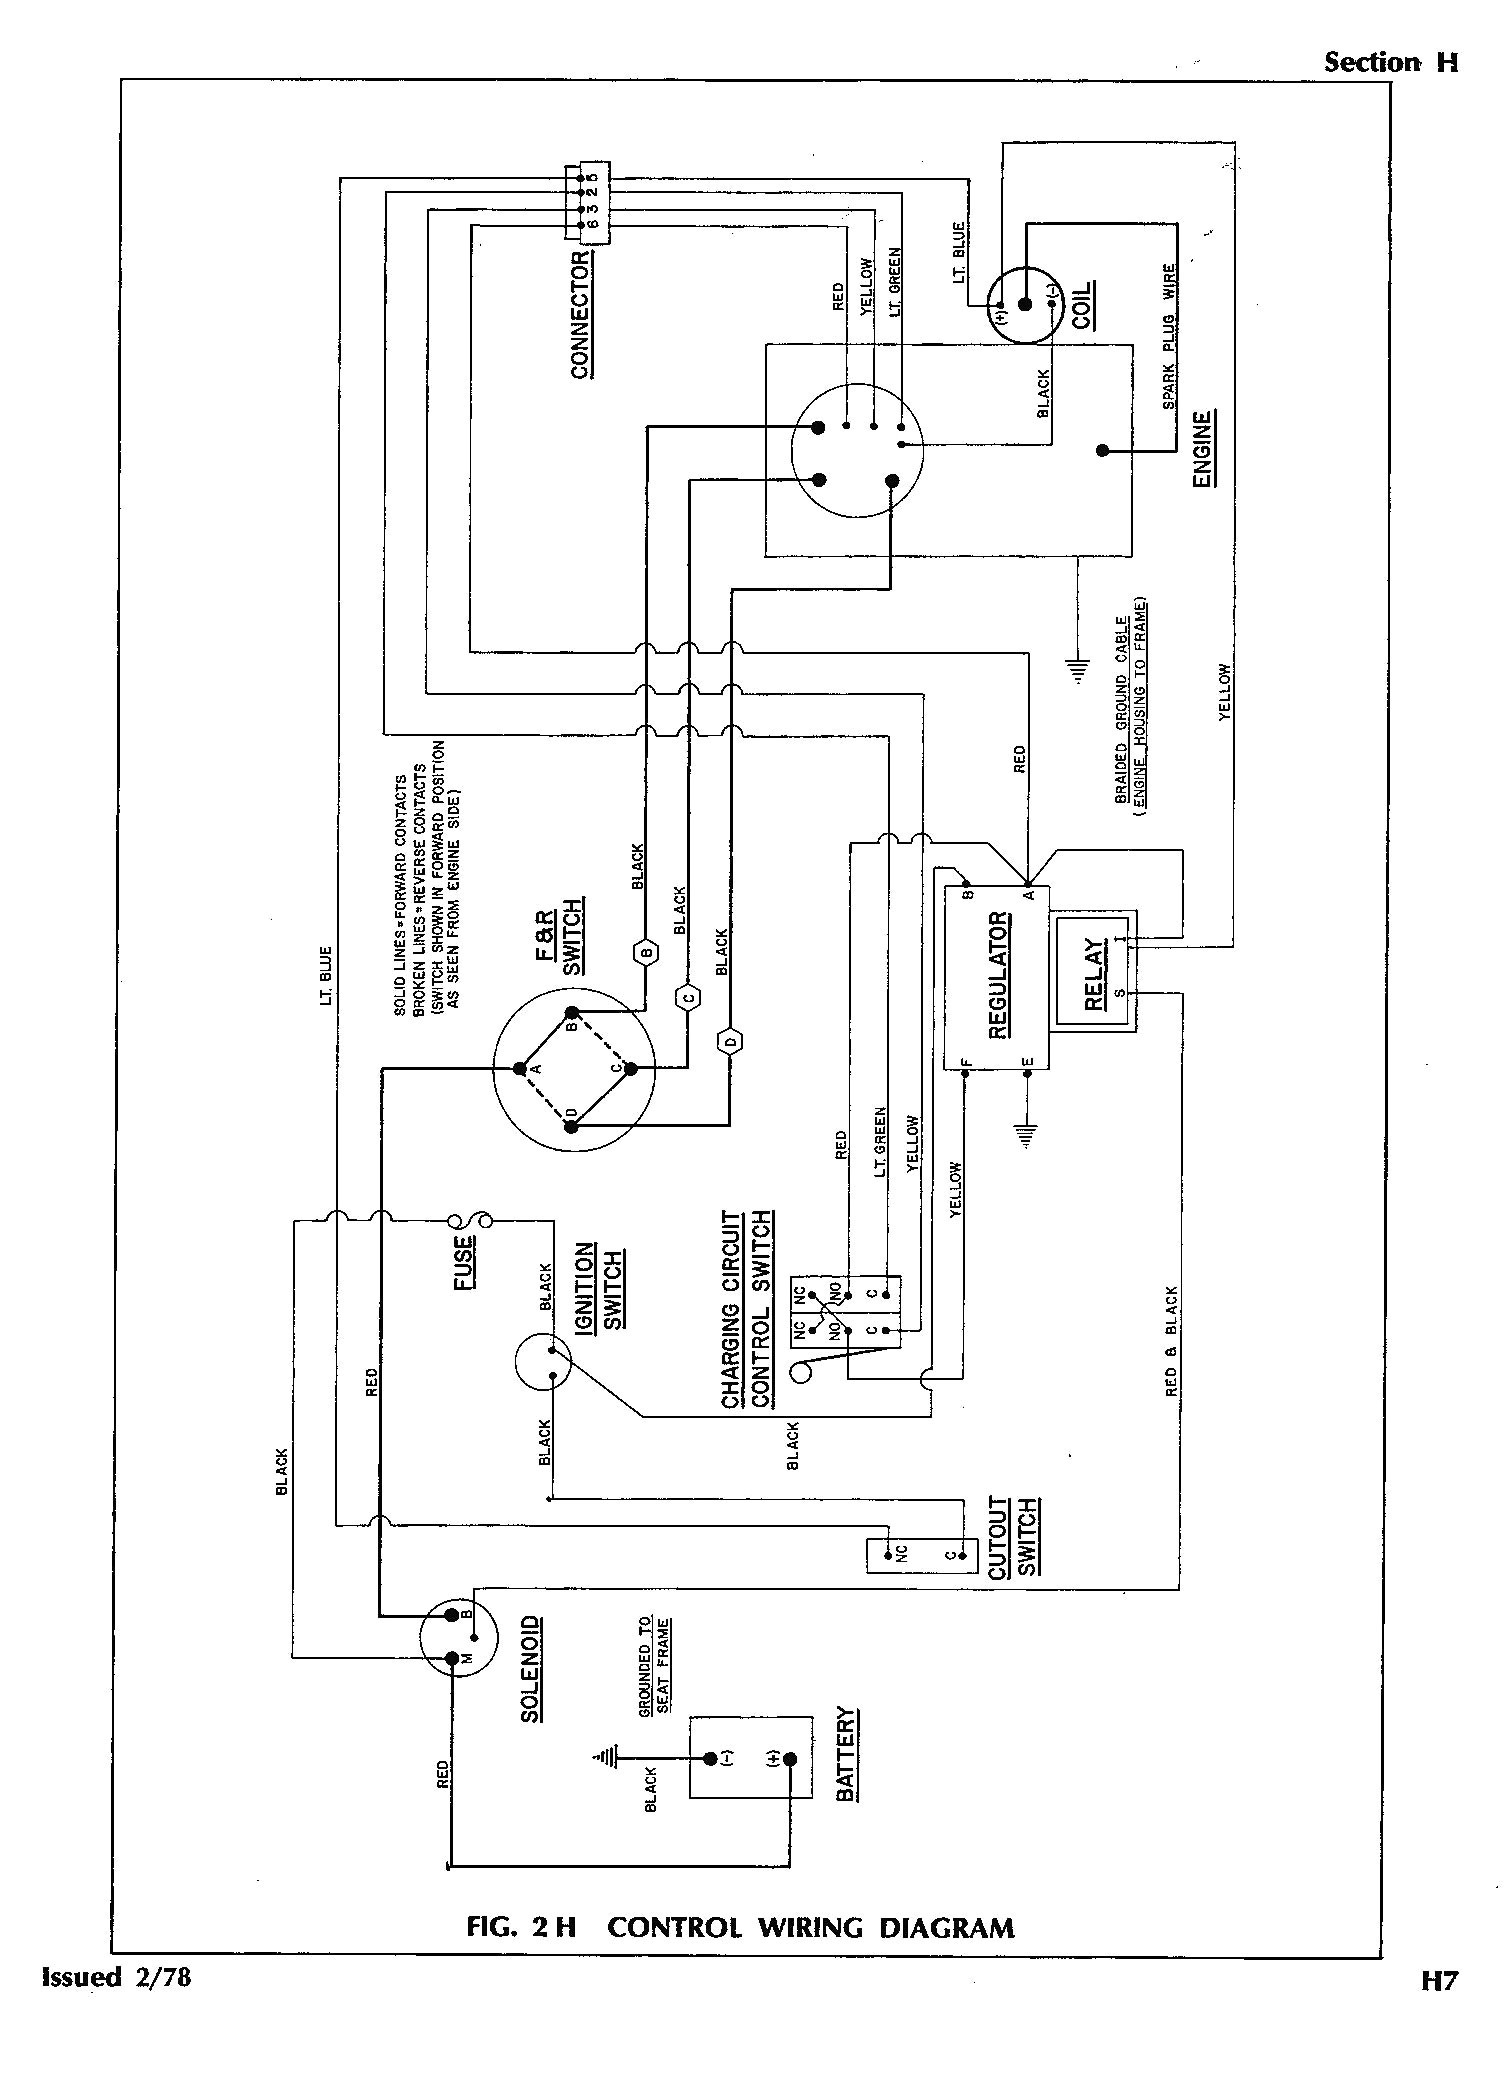 6 50 208 volt wiring diagram